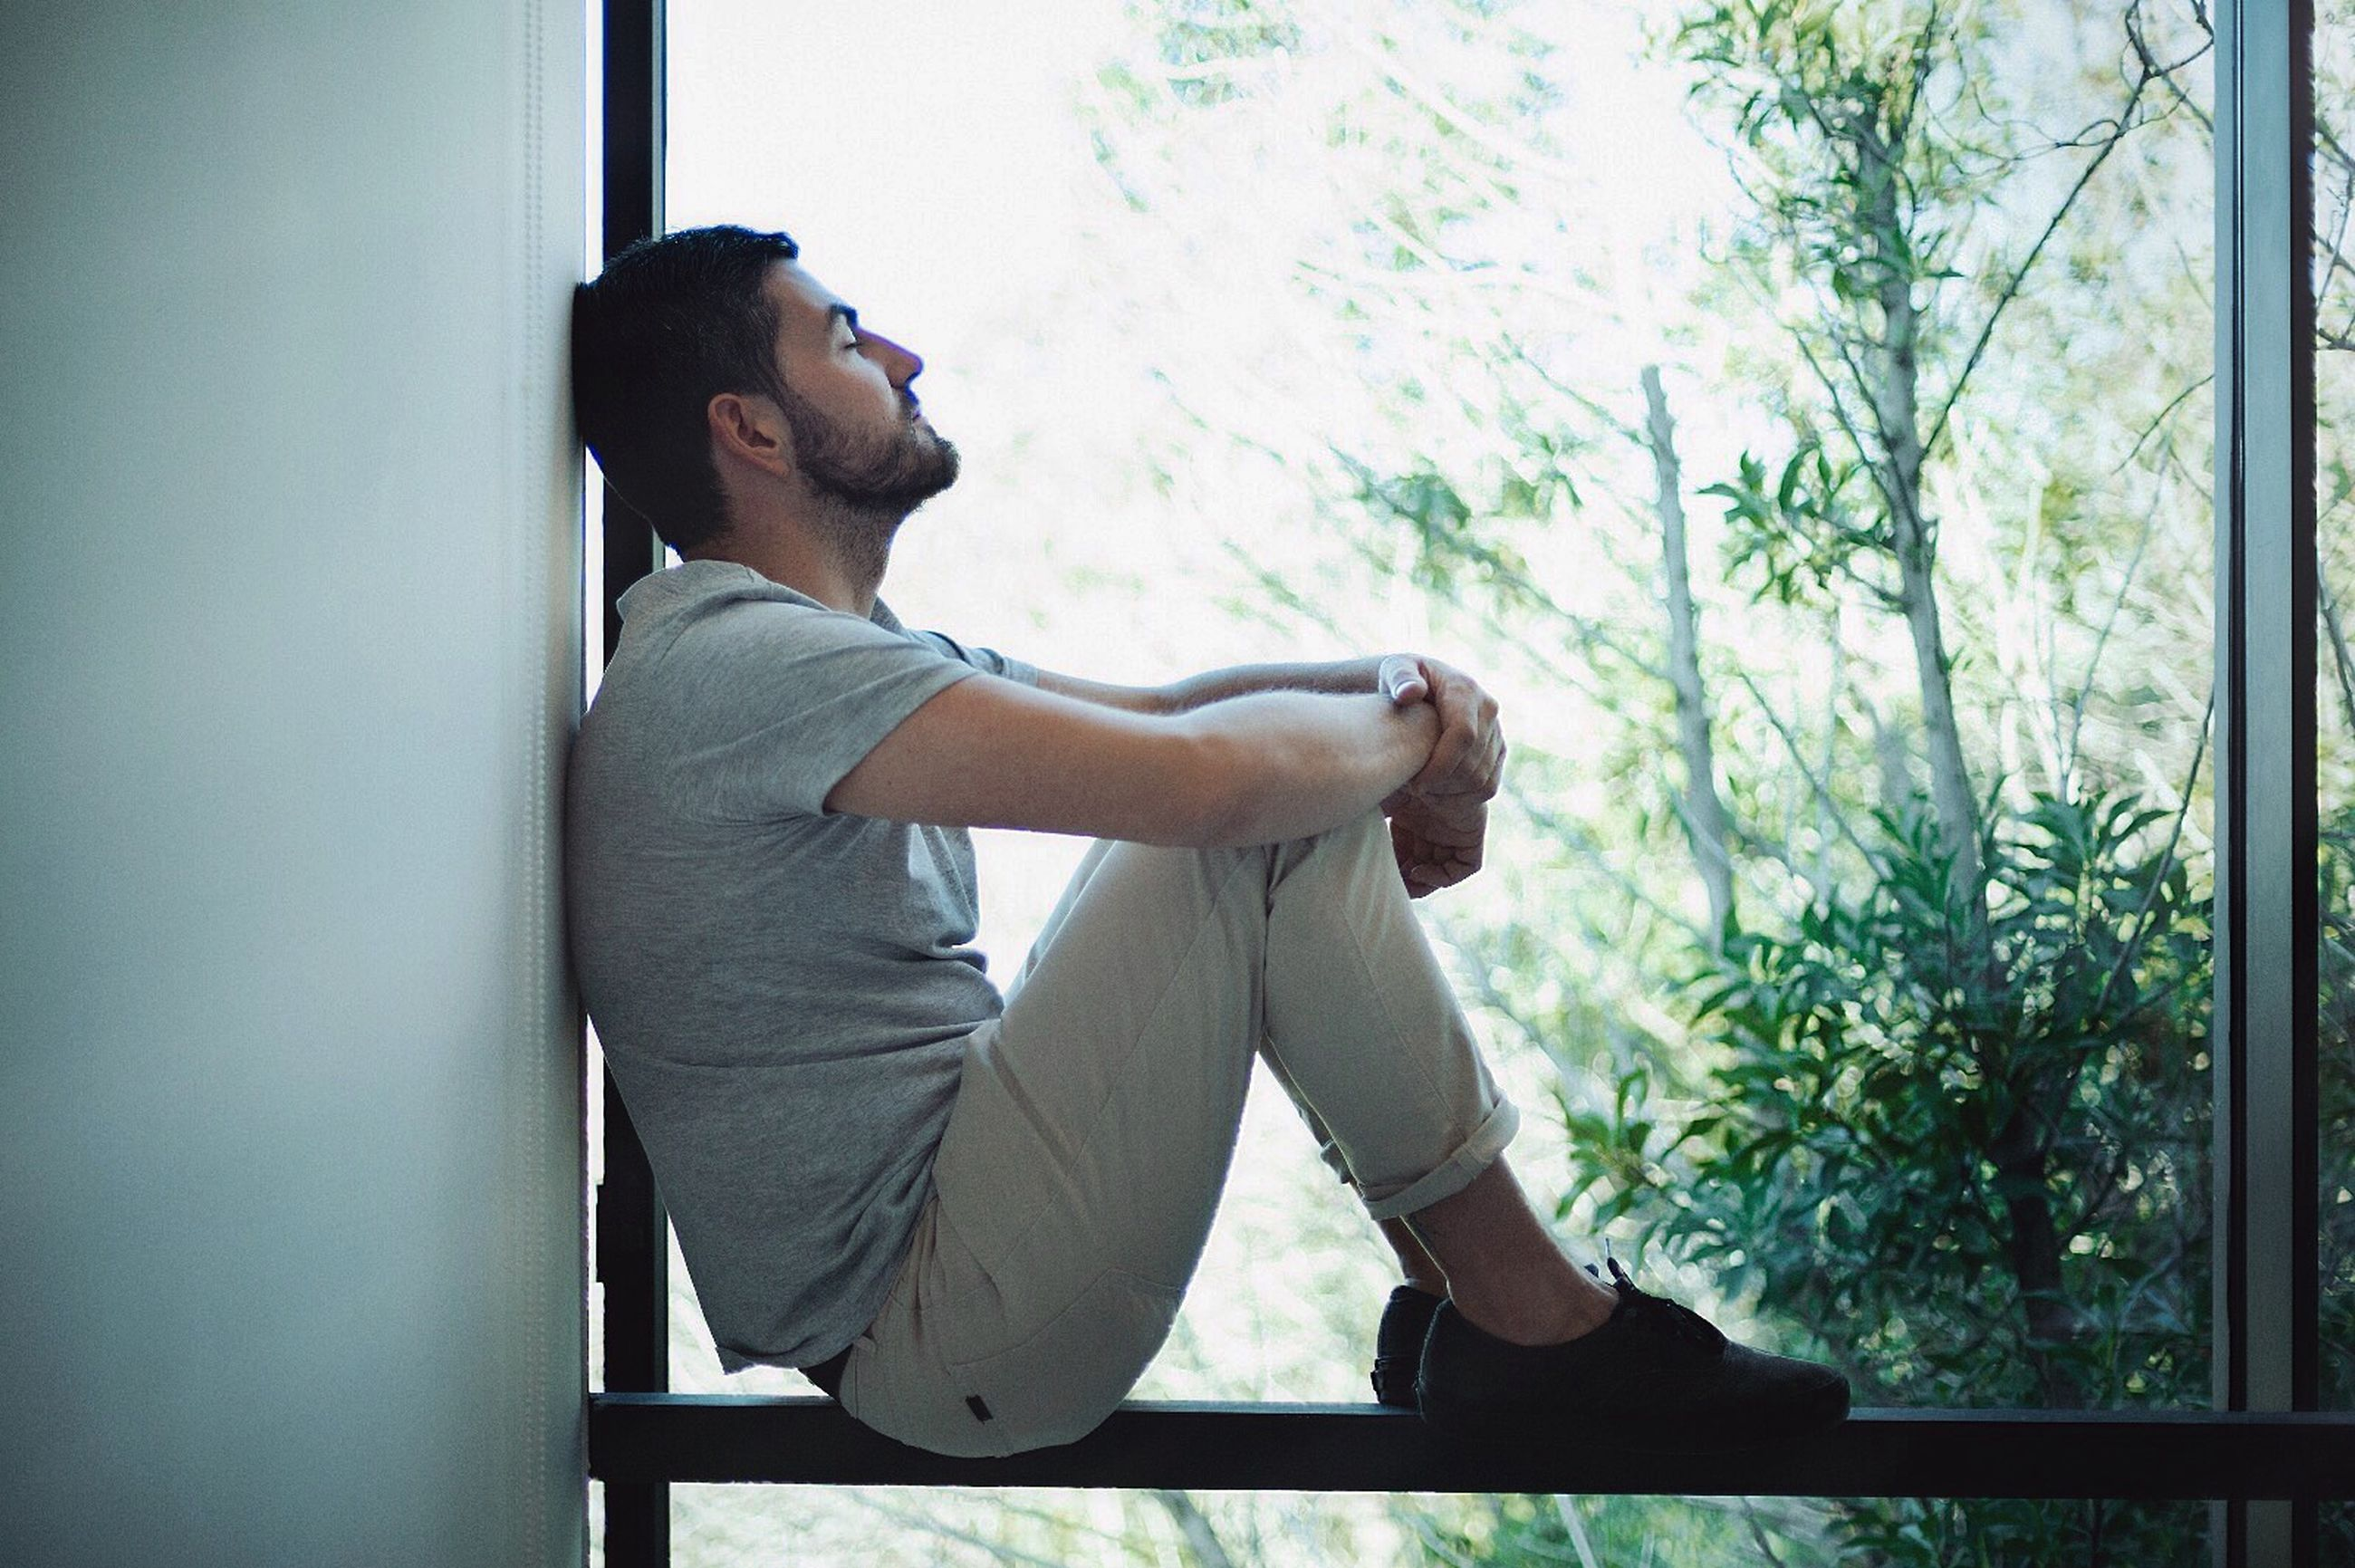 lifestyles, young adult, leisure activity, indoors, casual clothing, full length, side view, sitting, standing, window, holding, three quarter length, tree, young men, person, relaxation, day